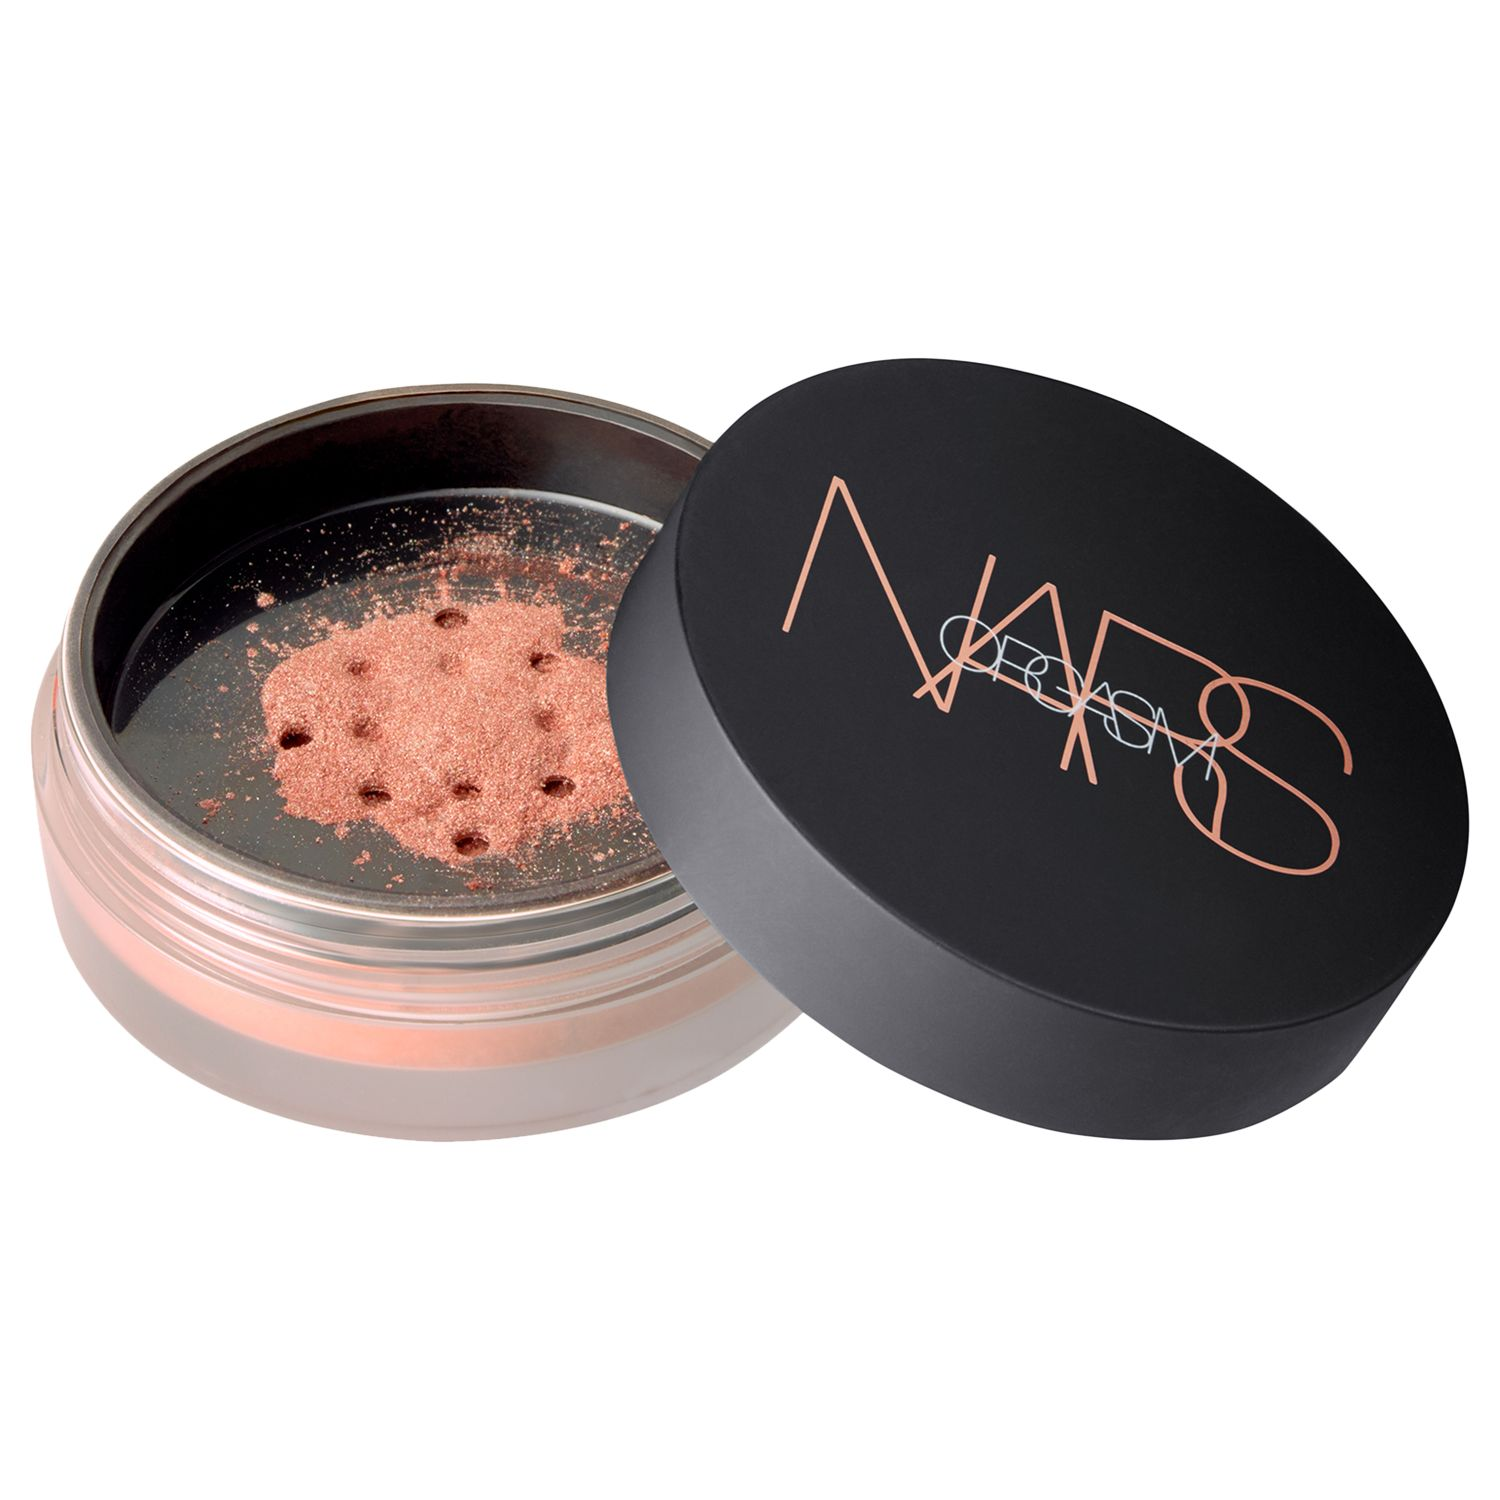 NARS NARS Orgasm Illuminating Loose Powder, Limited Edition